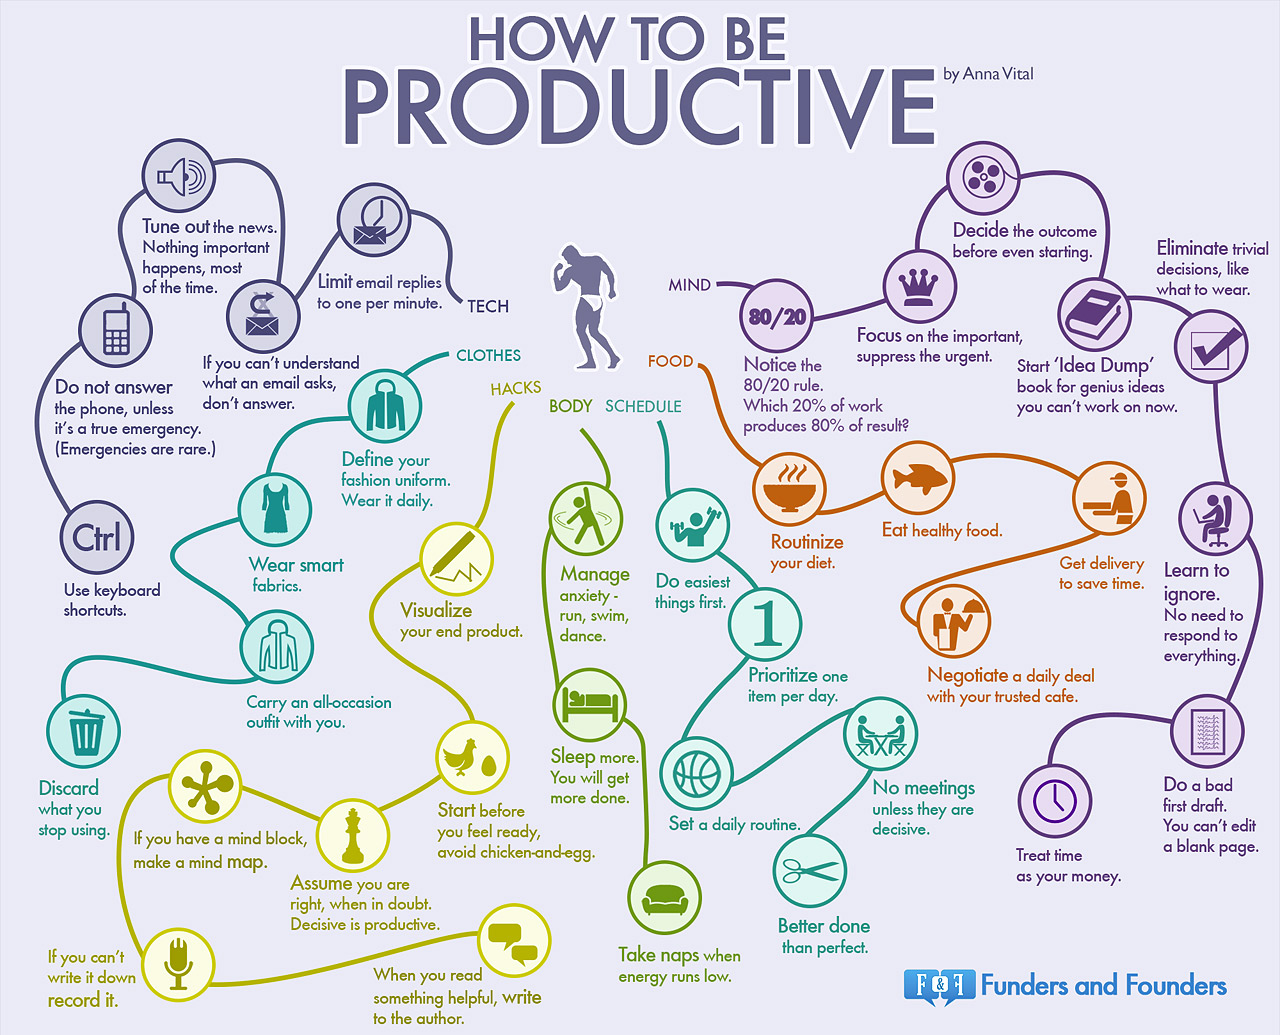 how-to-be-productive-get-done-35-habits-most-productive-people-infographic